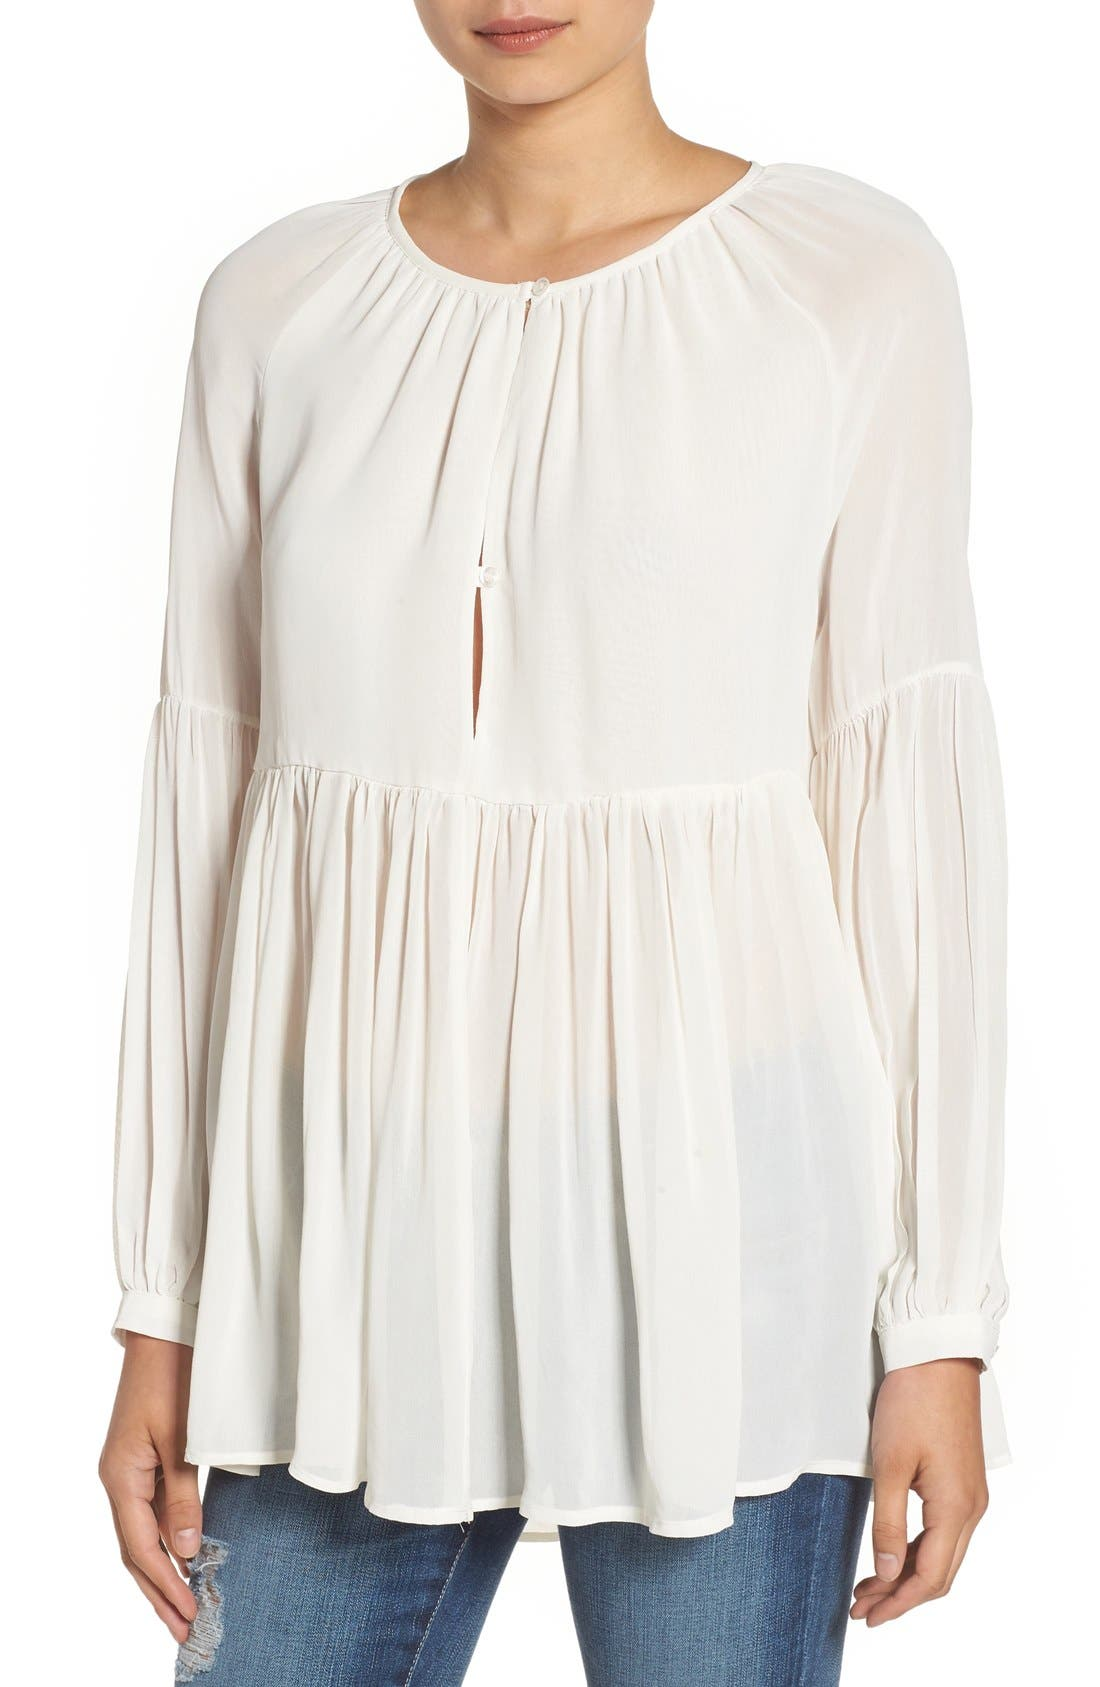 Alternate Image 1 Selected - Sincerely Jules 'Cameron' Chiffon Blouse